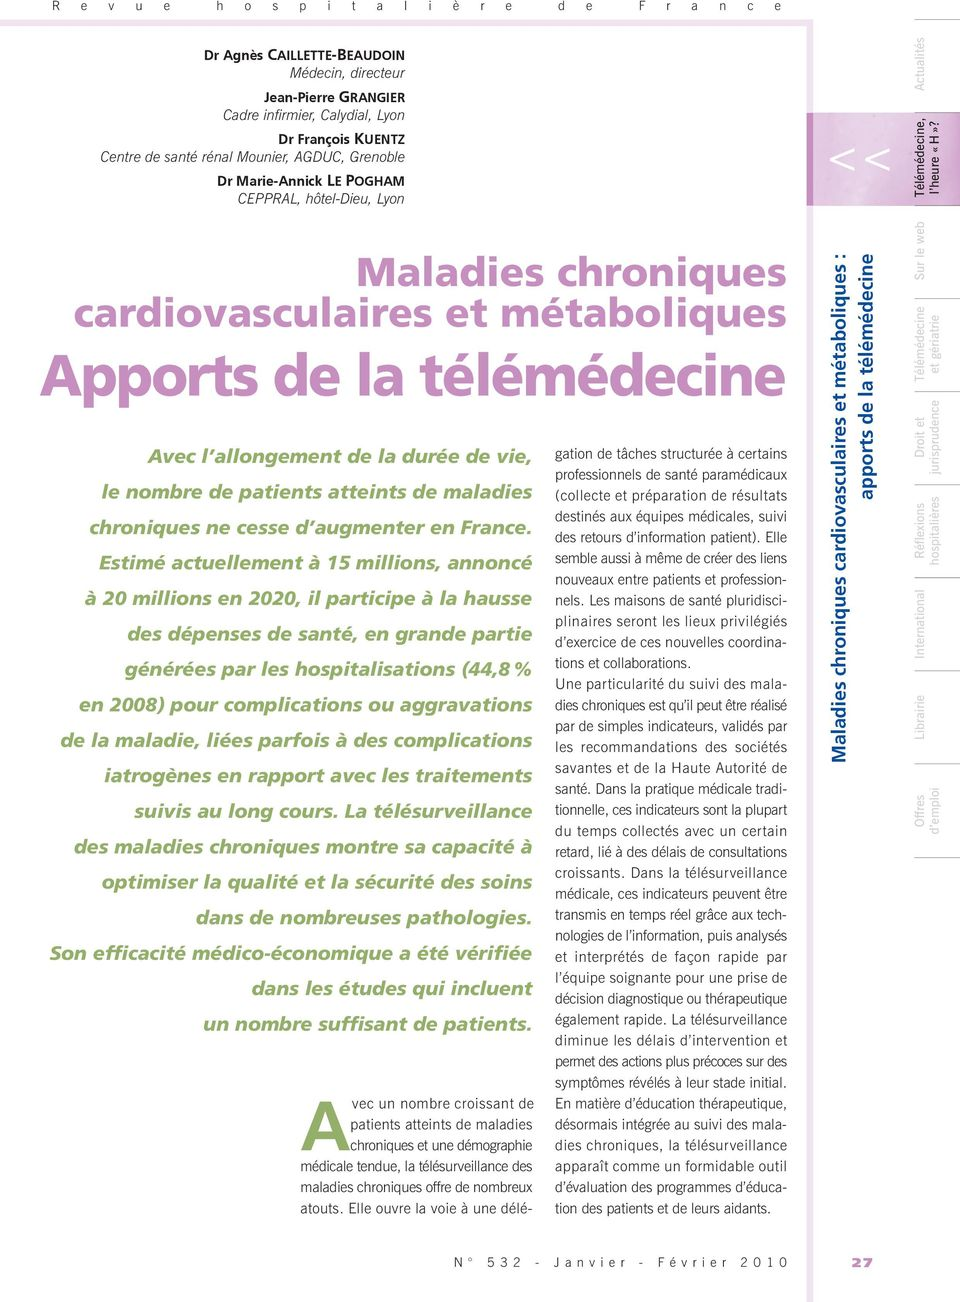 de patients atteints de maladies chroniques ne cesse d augmenter en France.